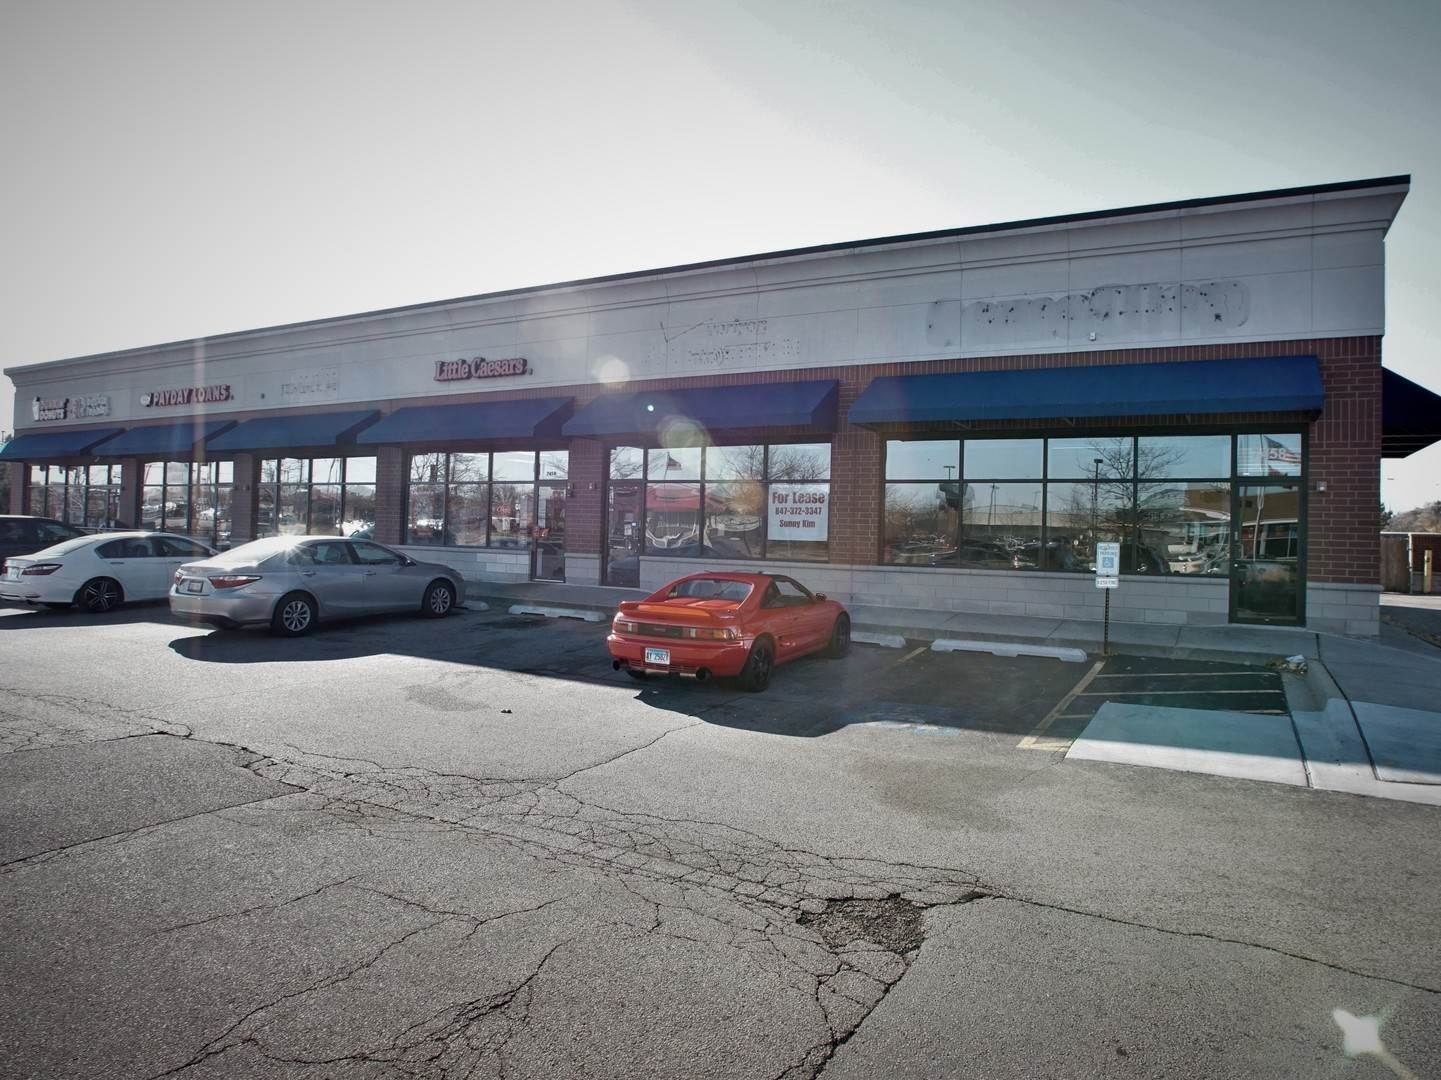 Commerciale alle 7456 Barrington Road Hanover Park, Illinois 60133 Stati Uniti